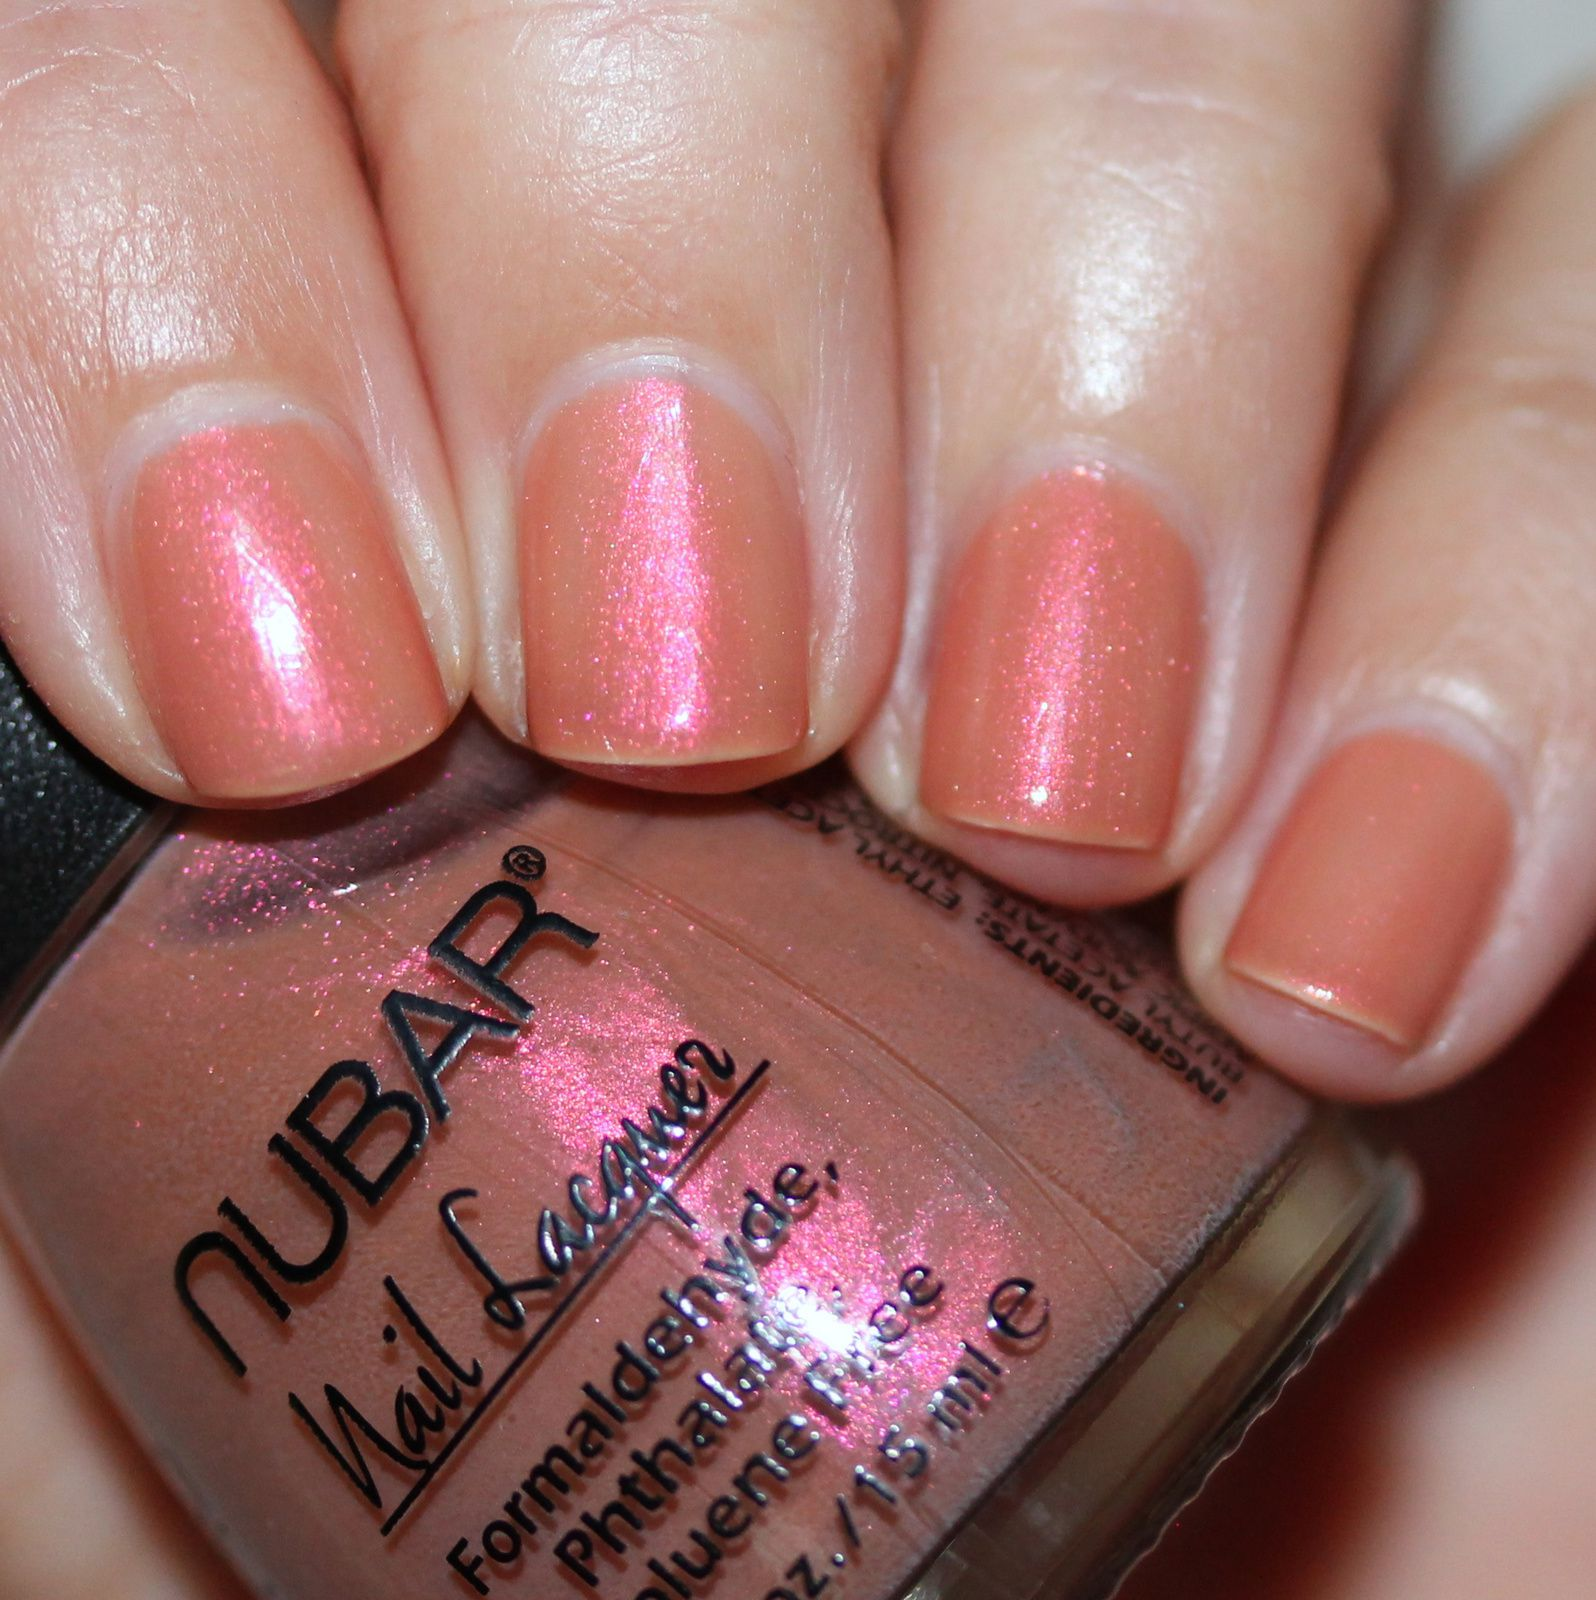 Essie Protein Base Coat / Nubar Calla Lily Caramel / Lilypad Lacquer Crystal Clear Top Coat